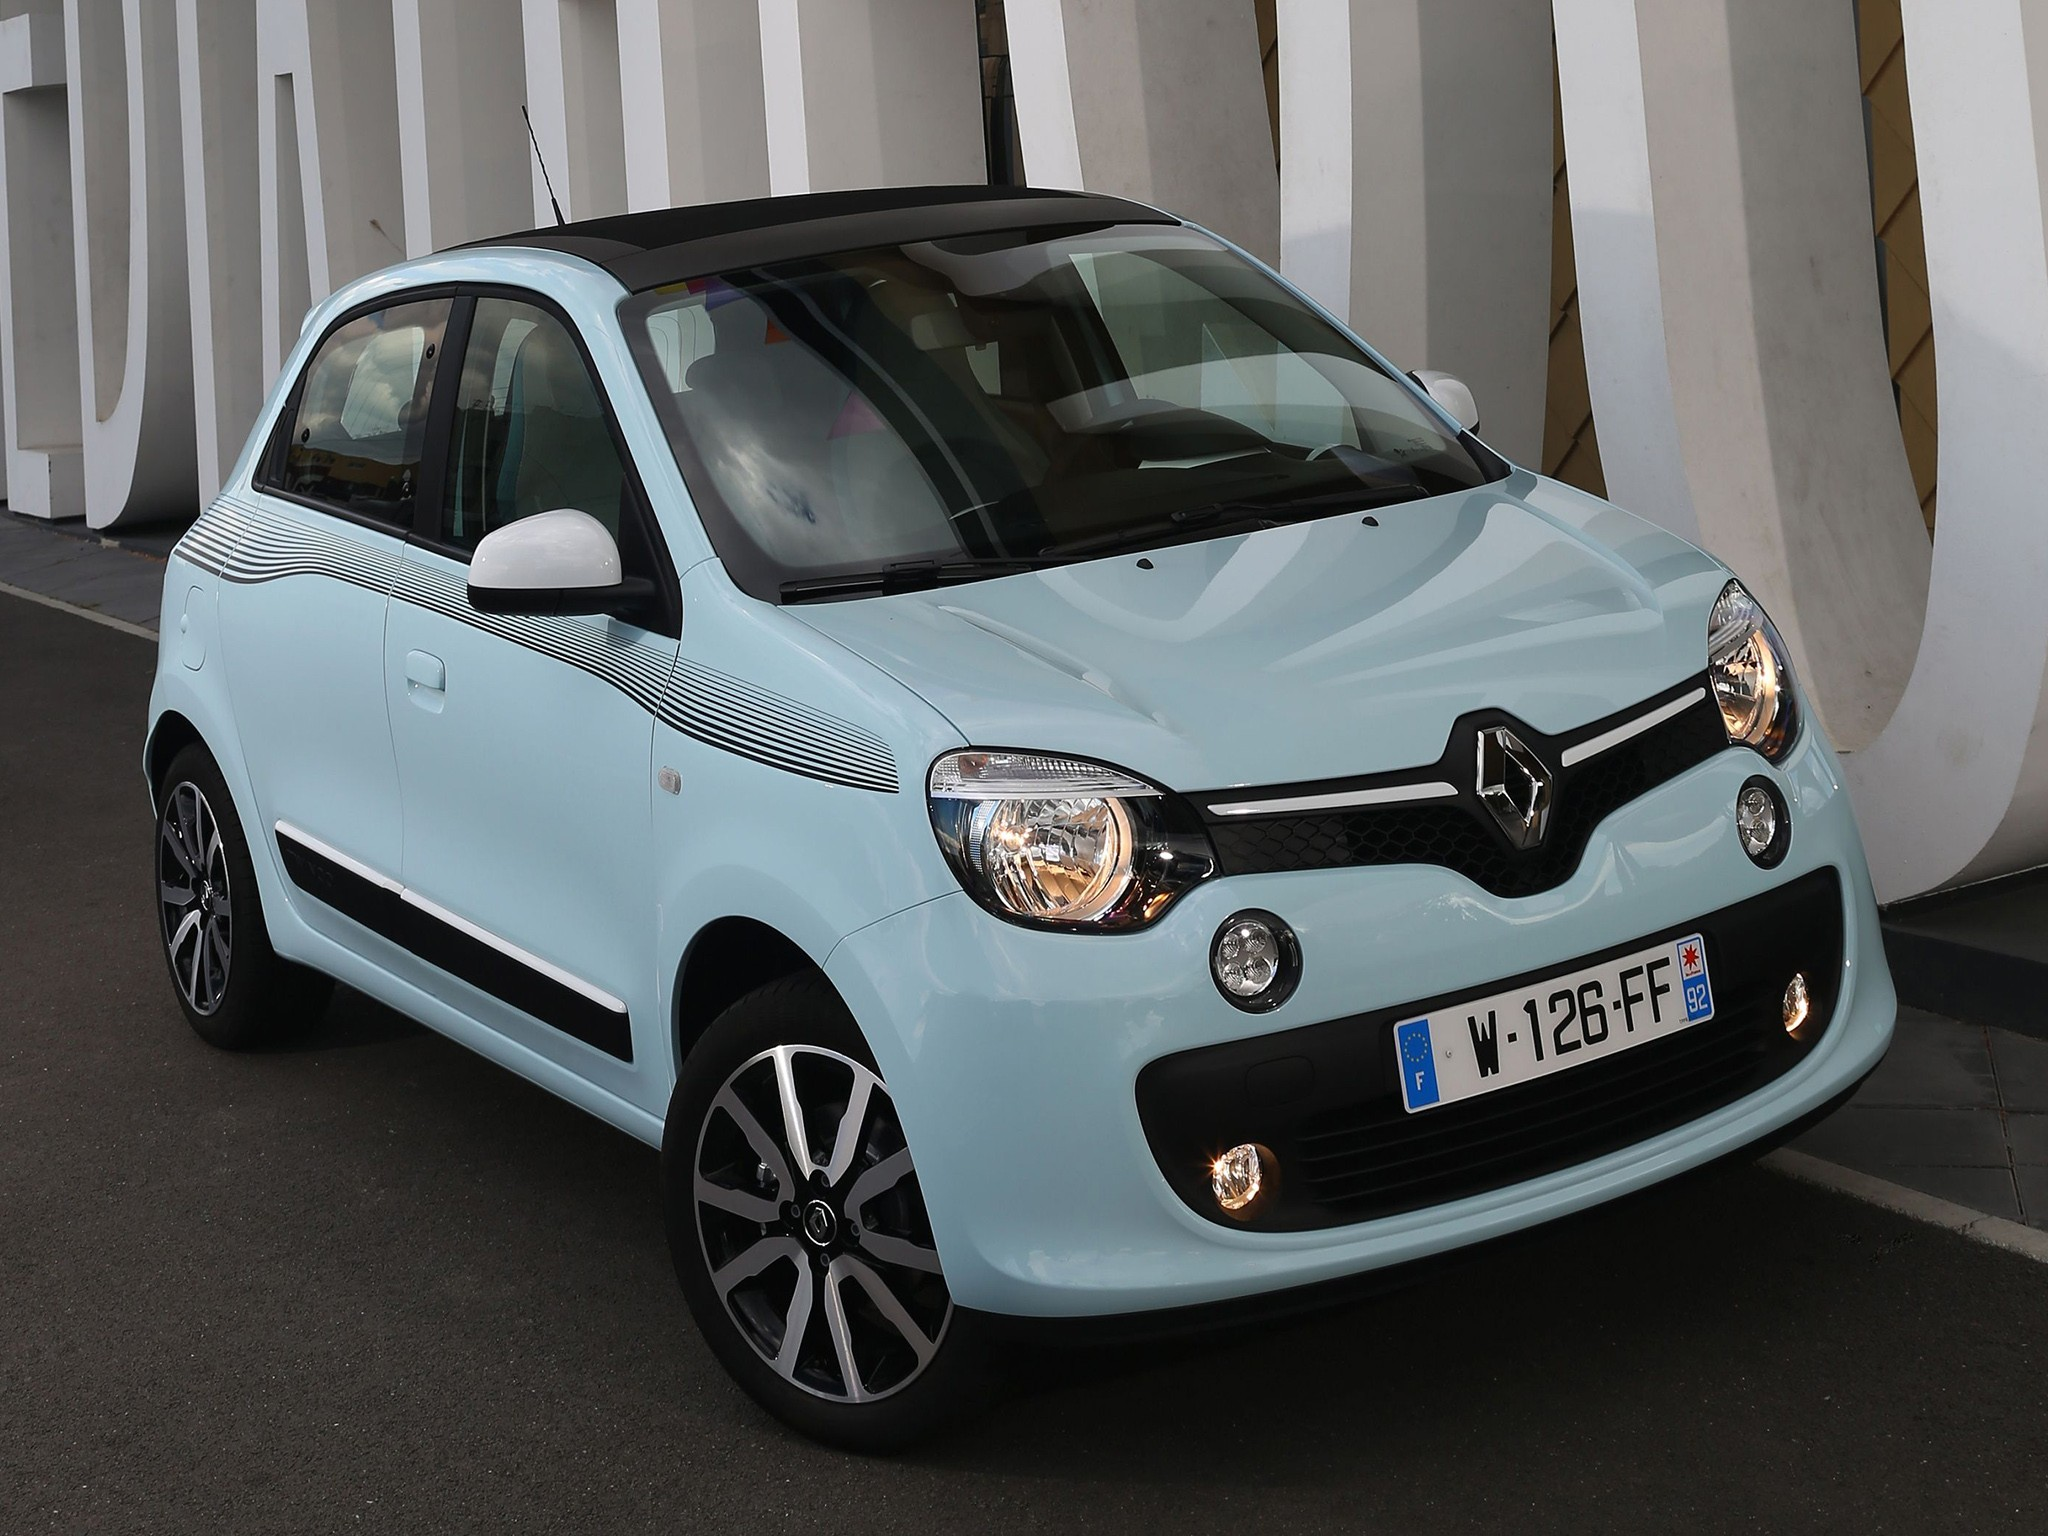 renault twingo specs 2014 2015 2016 2017 autoevolution. Black Bedroom Furniture Sets. Home Design Ideas